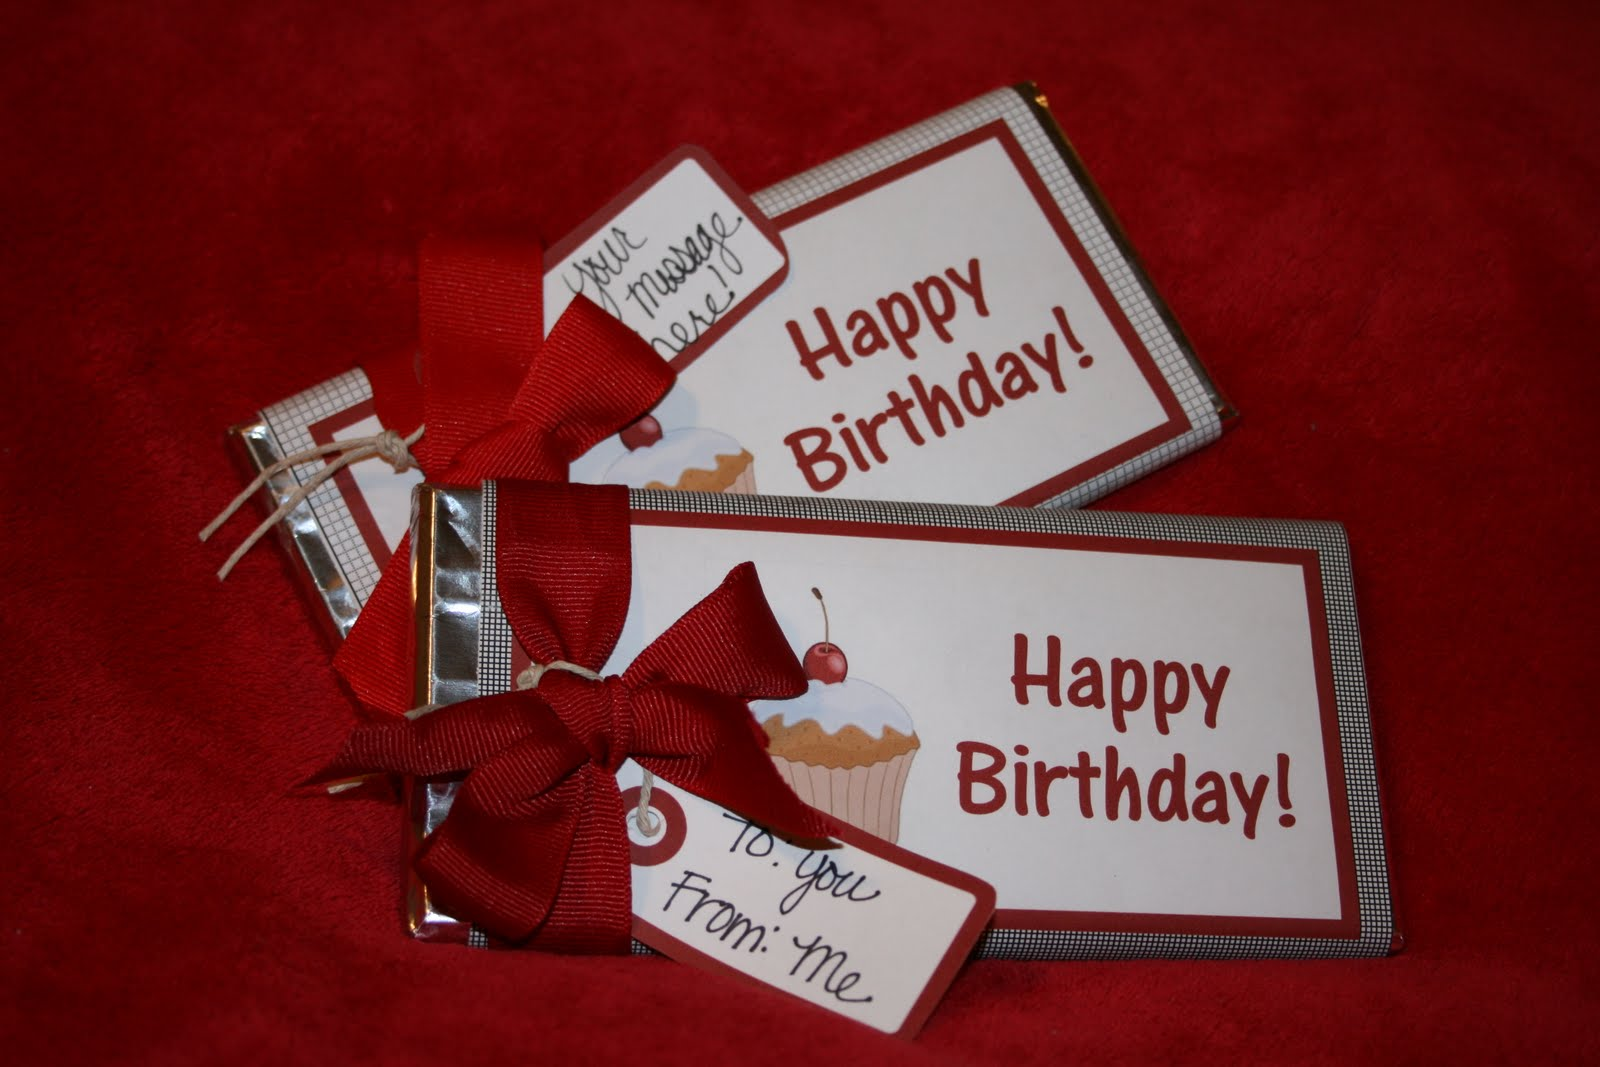 Little Miss Suzy Q Hy Birthday Candy Bar Wrer Crafty Yummy Home Young Women Gifts In A Can